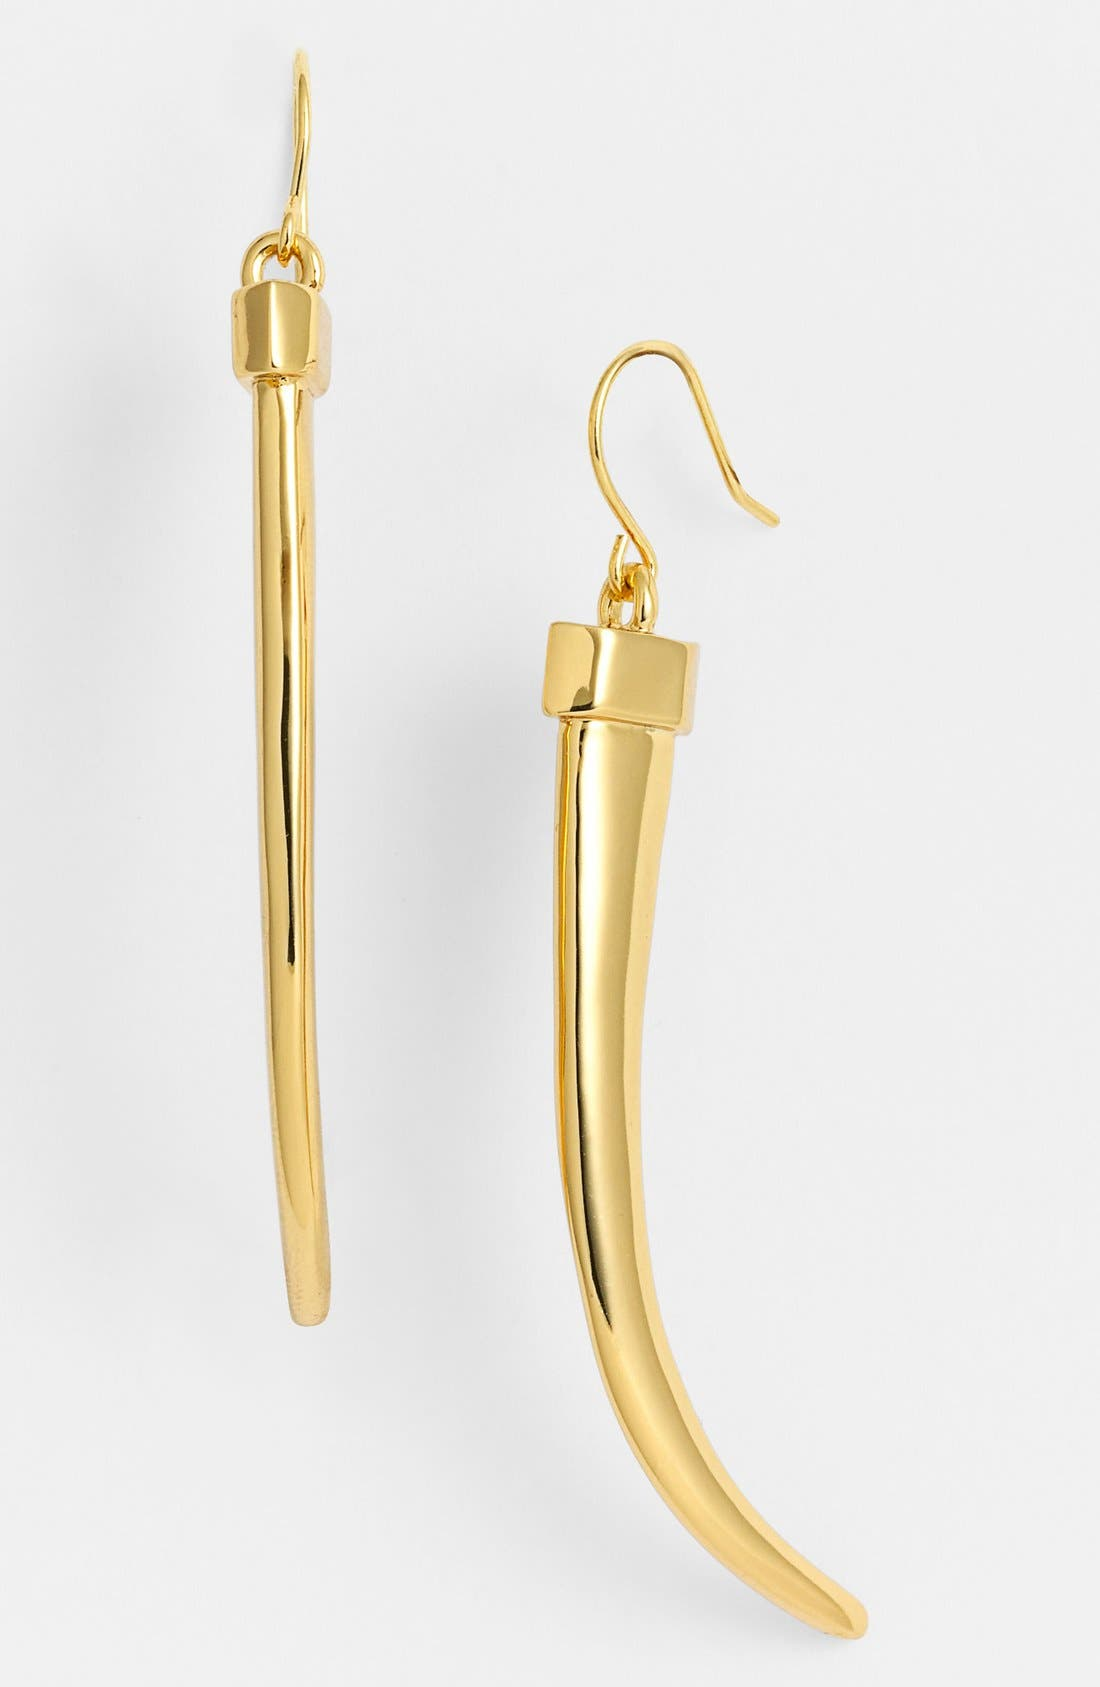 Main Image - Vince Camuto 'By the Horns' Linear Earrings